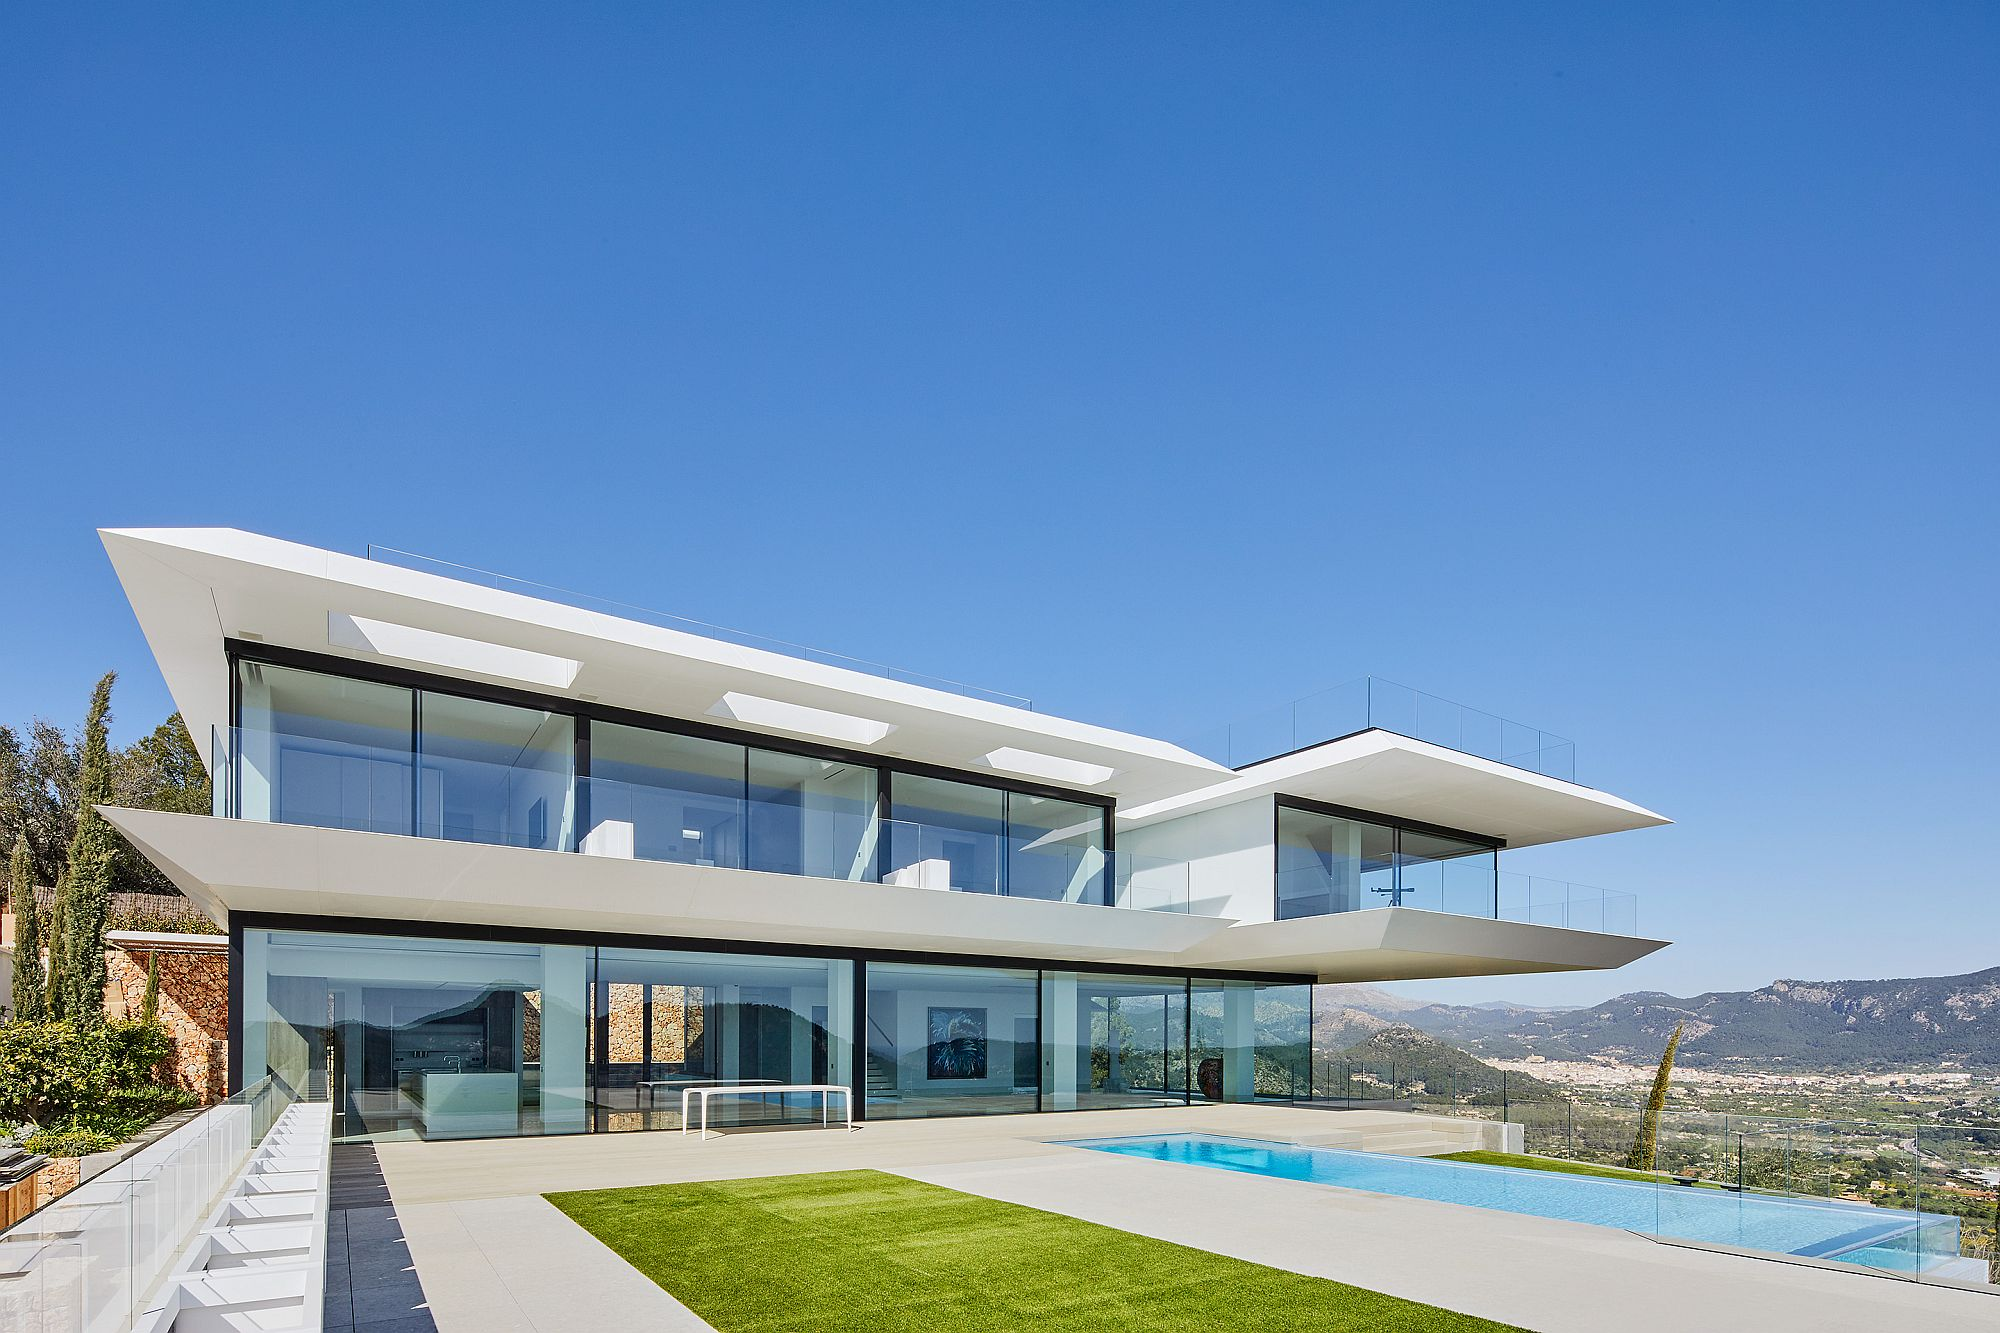 Beautiful-and-minimal-facade-of-the-hilltop-home-covered-in-KRION-solid-surface